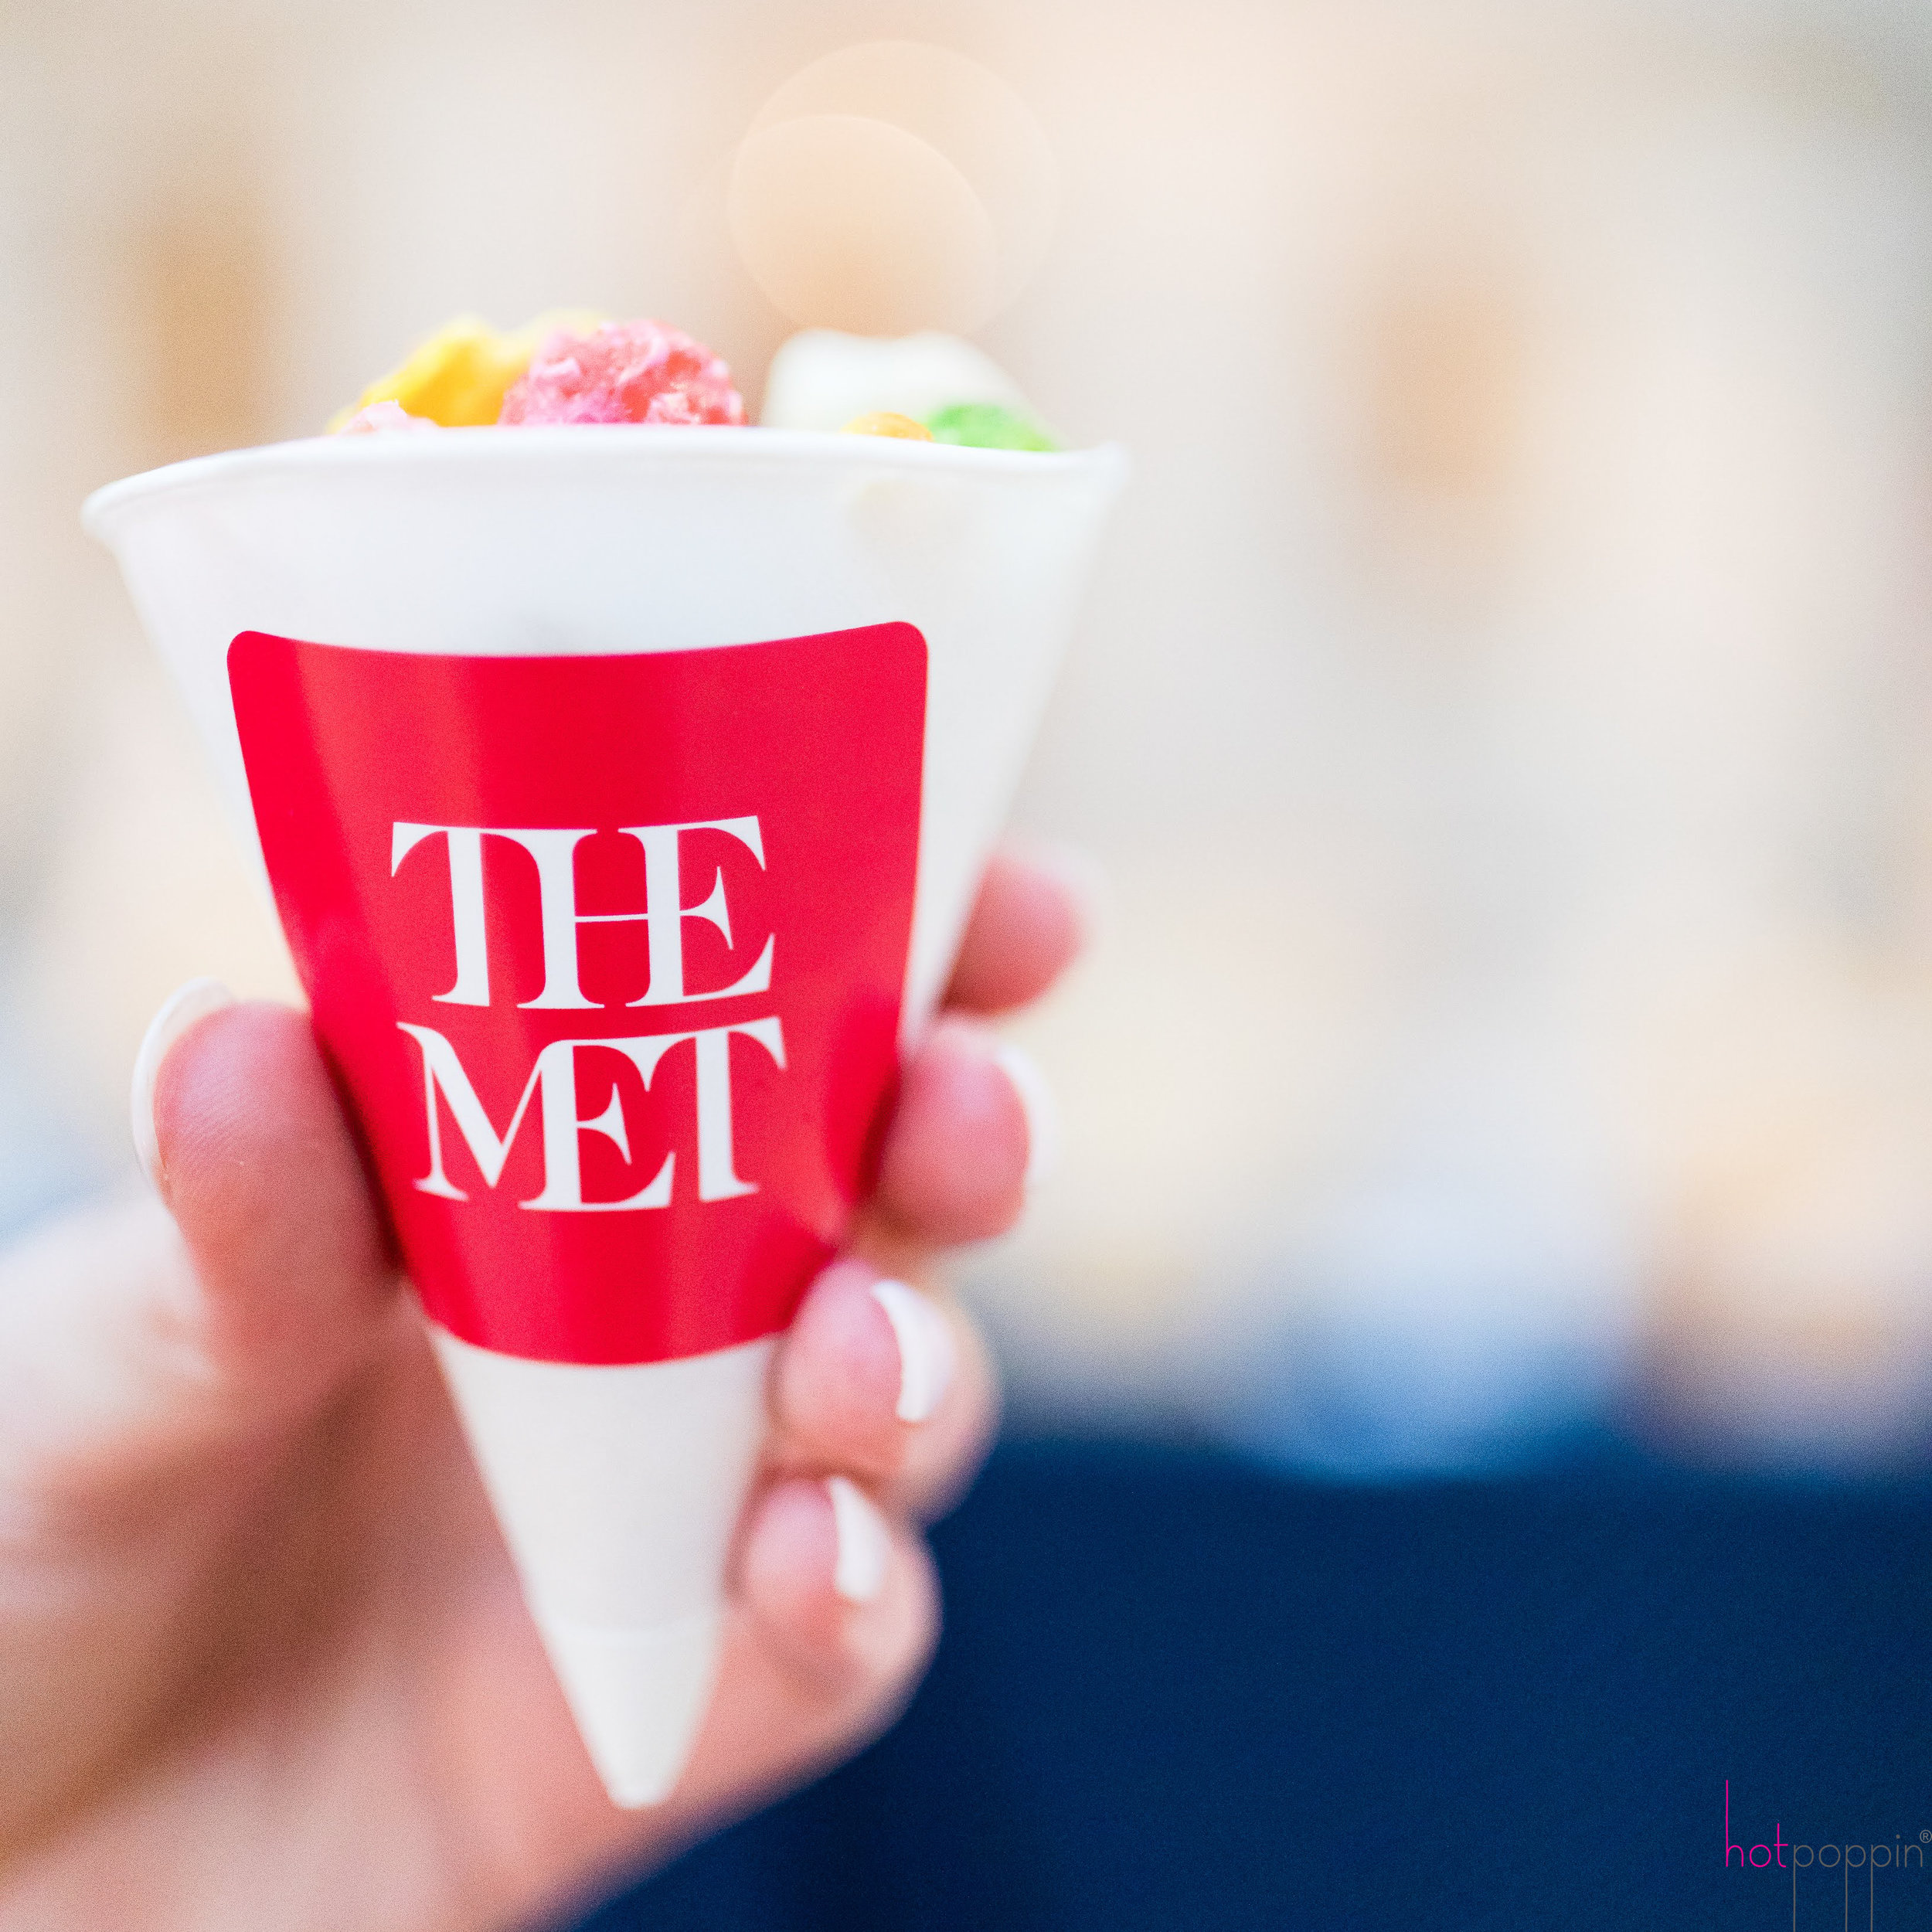 Make Your life Sweeter Events - The Met Custom Popcorn Cone